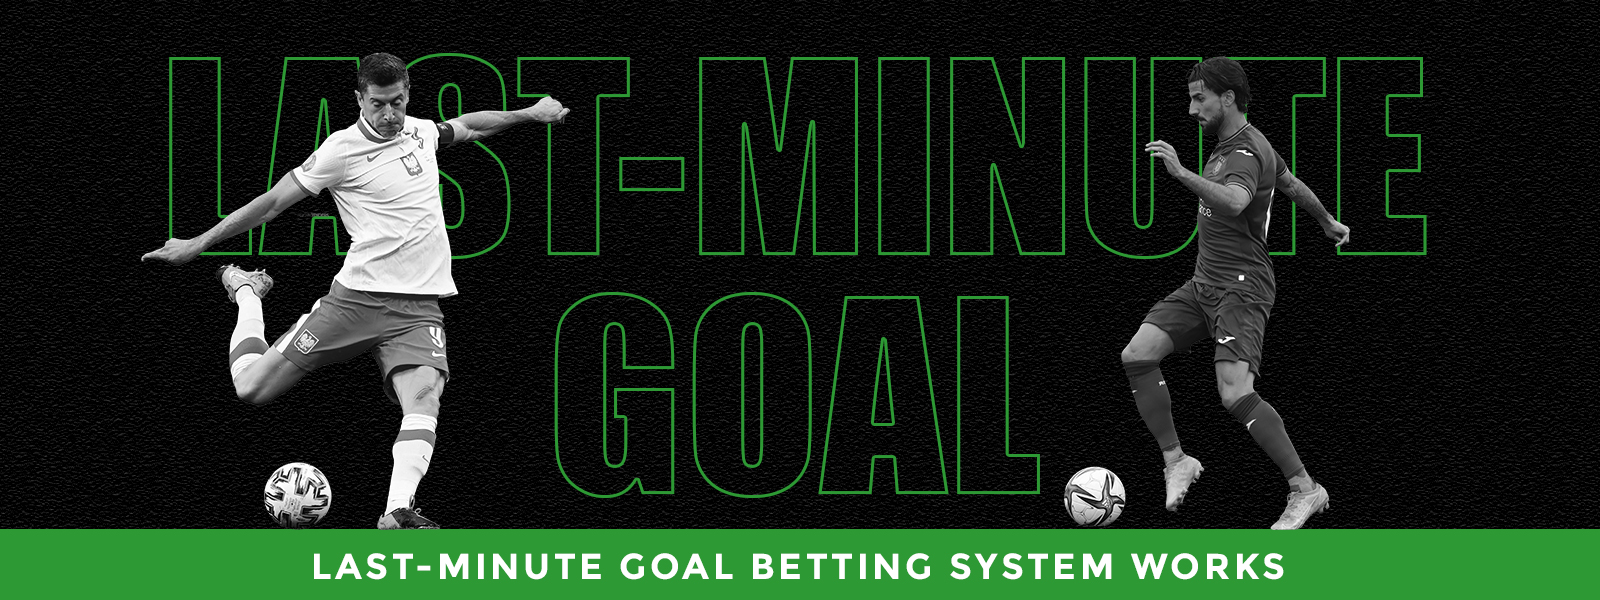 Last-Minute Goals Betting Strategy